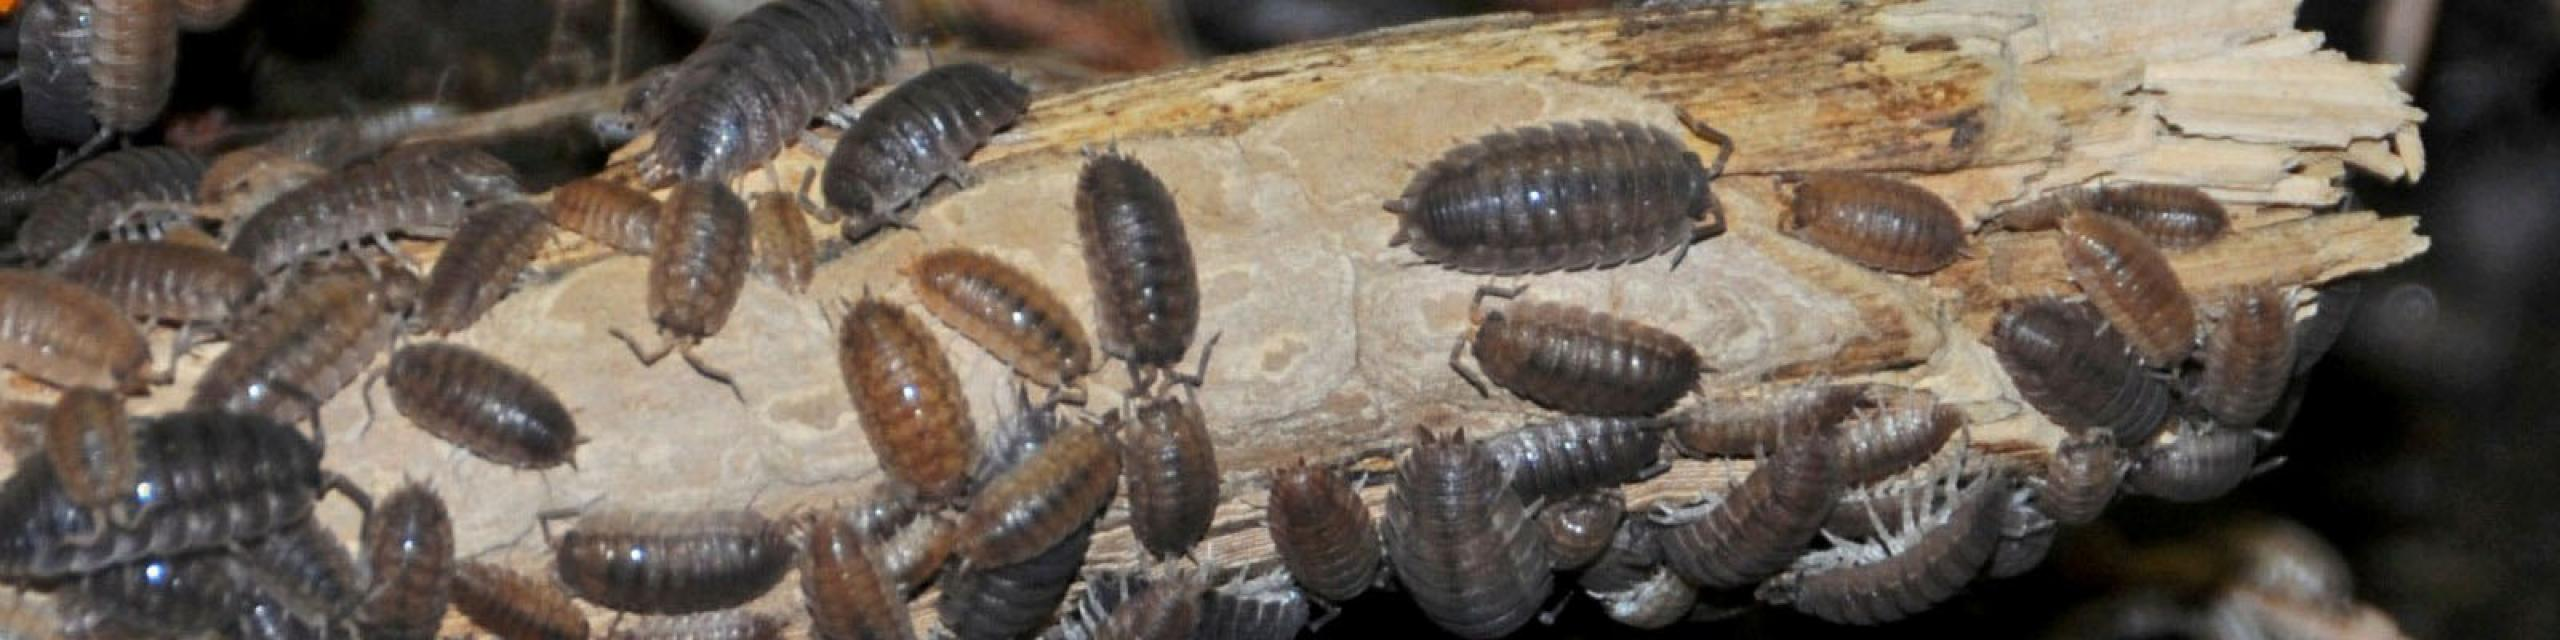 Image of sowbugs huddled together - Humboldt Termite & Pest